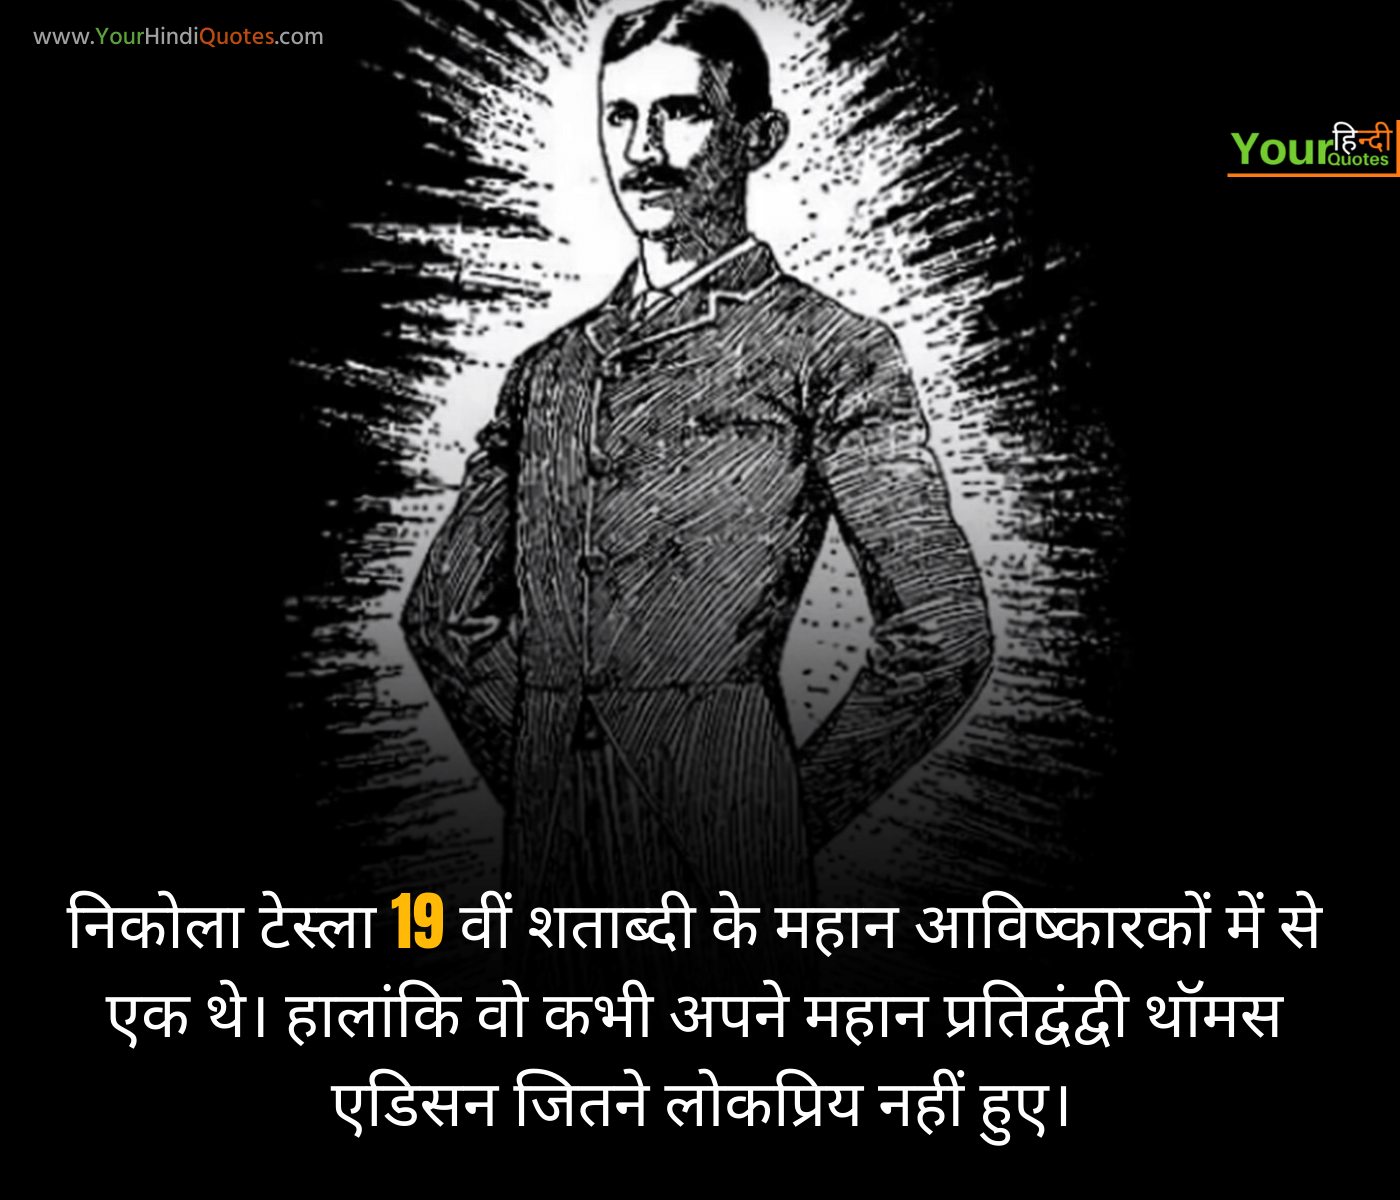 Nikola Tesla Quote in hindi Image